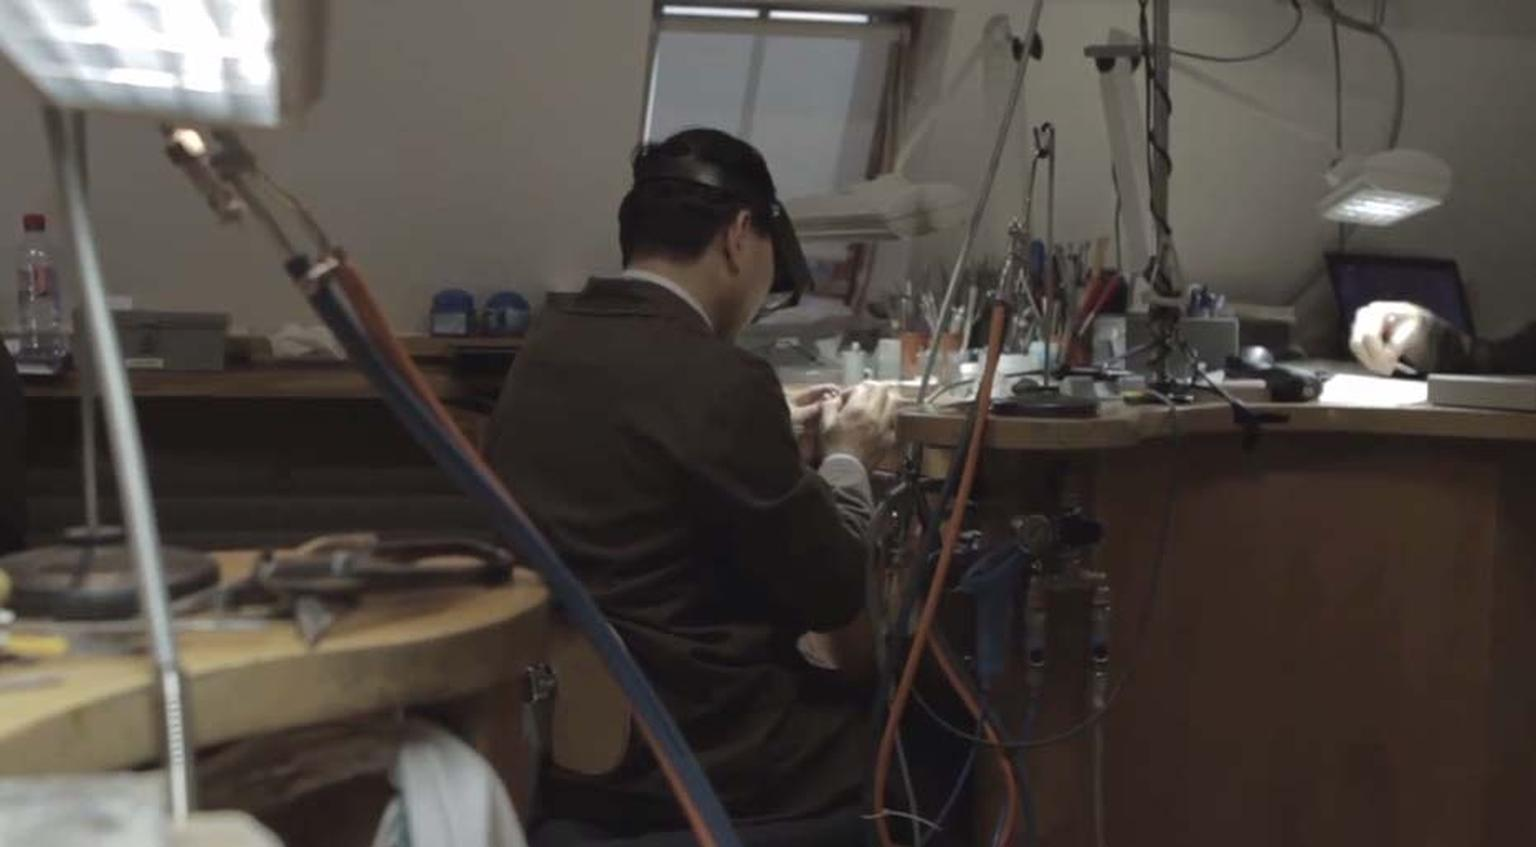 A jeweller working within Louis Vuitton's Paris atelier.